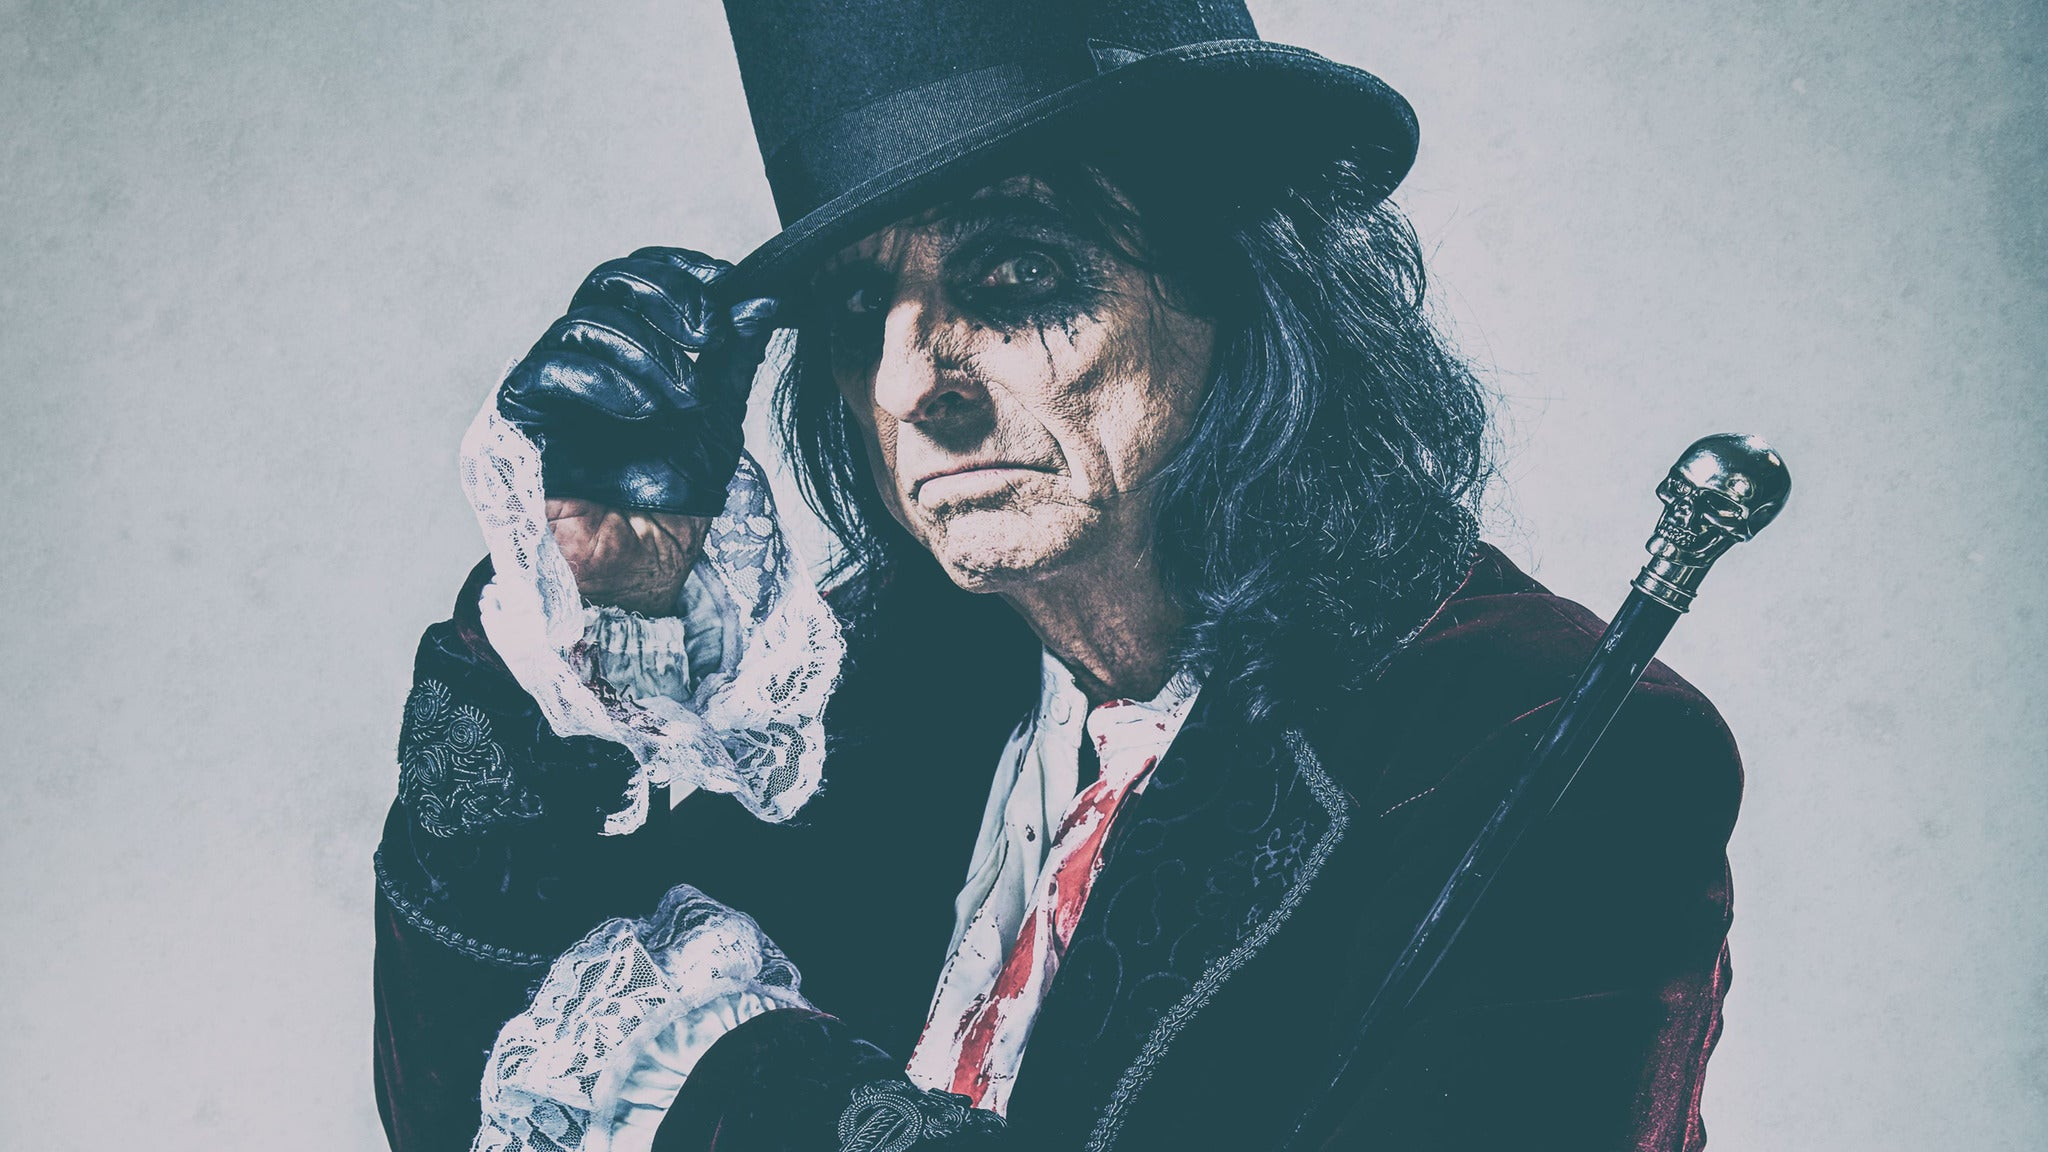 Alice Cooper w/ Halestorm at Thompson-Boling Arena